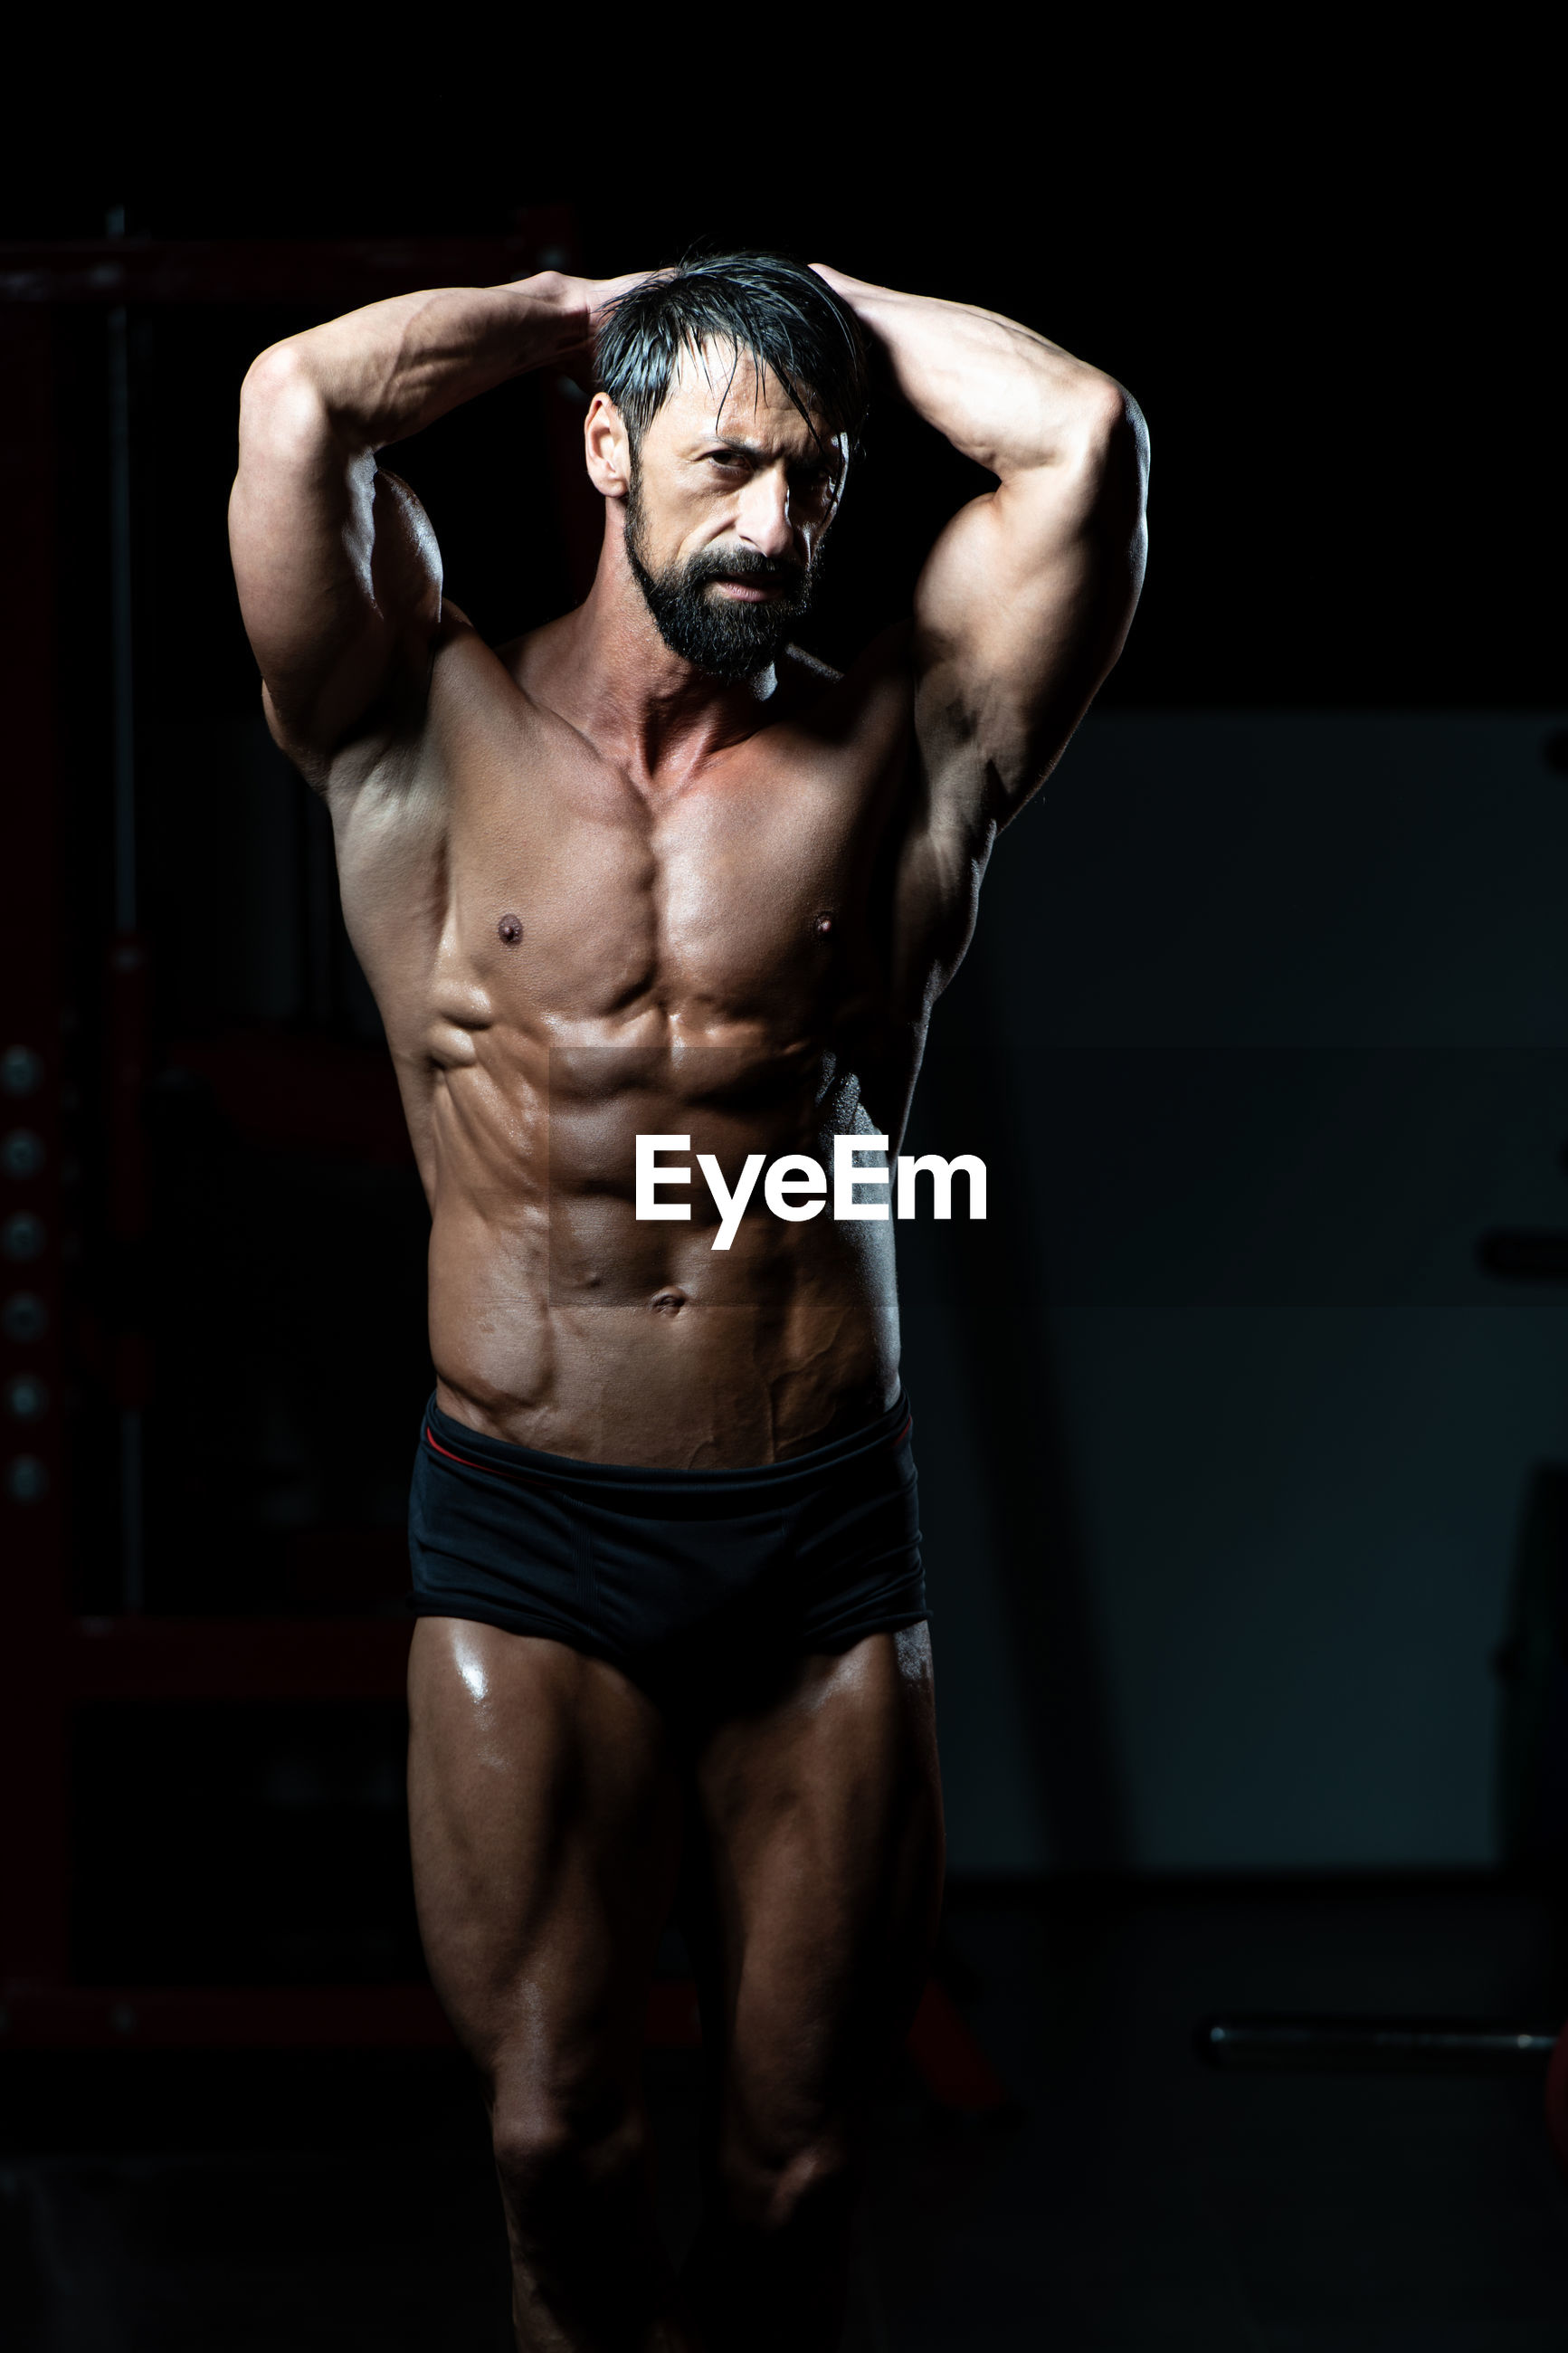 MIDSECTION OF SHIRTLESS MAN STANDING IN DARK